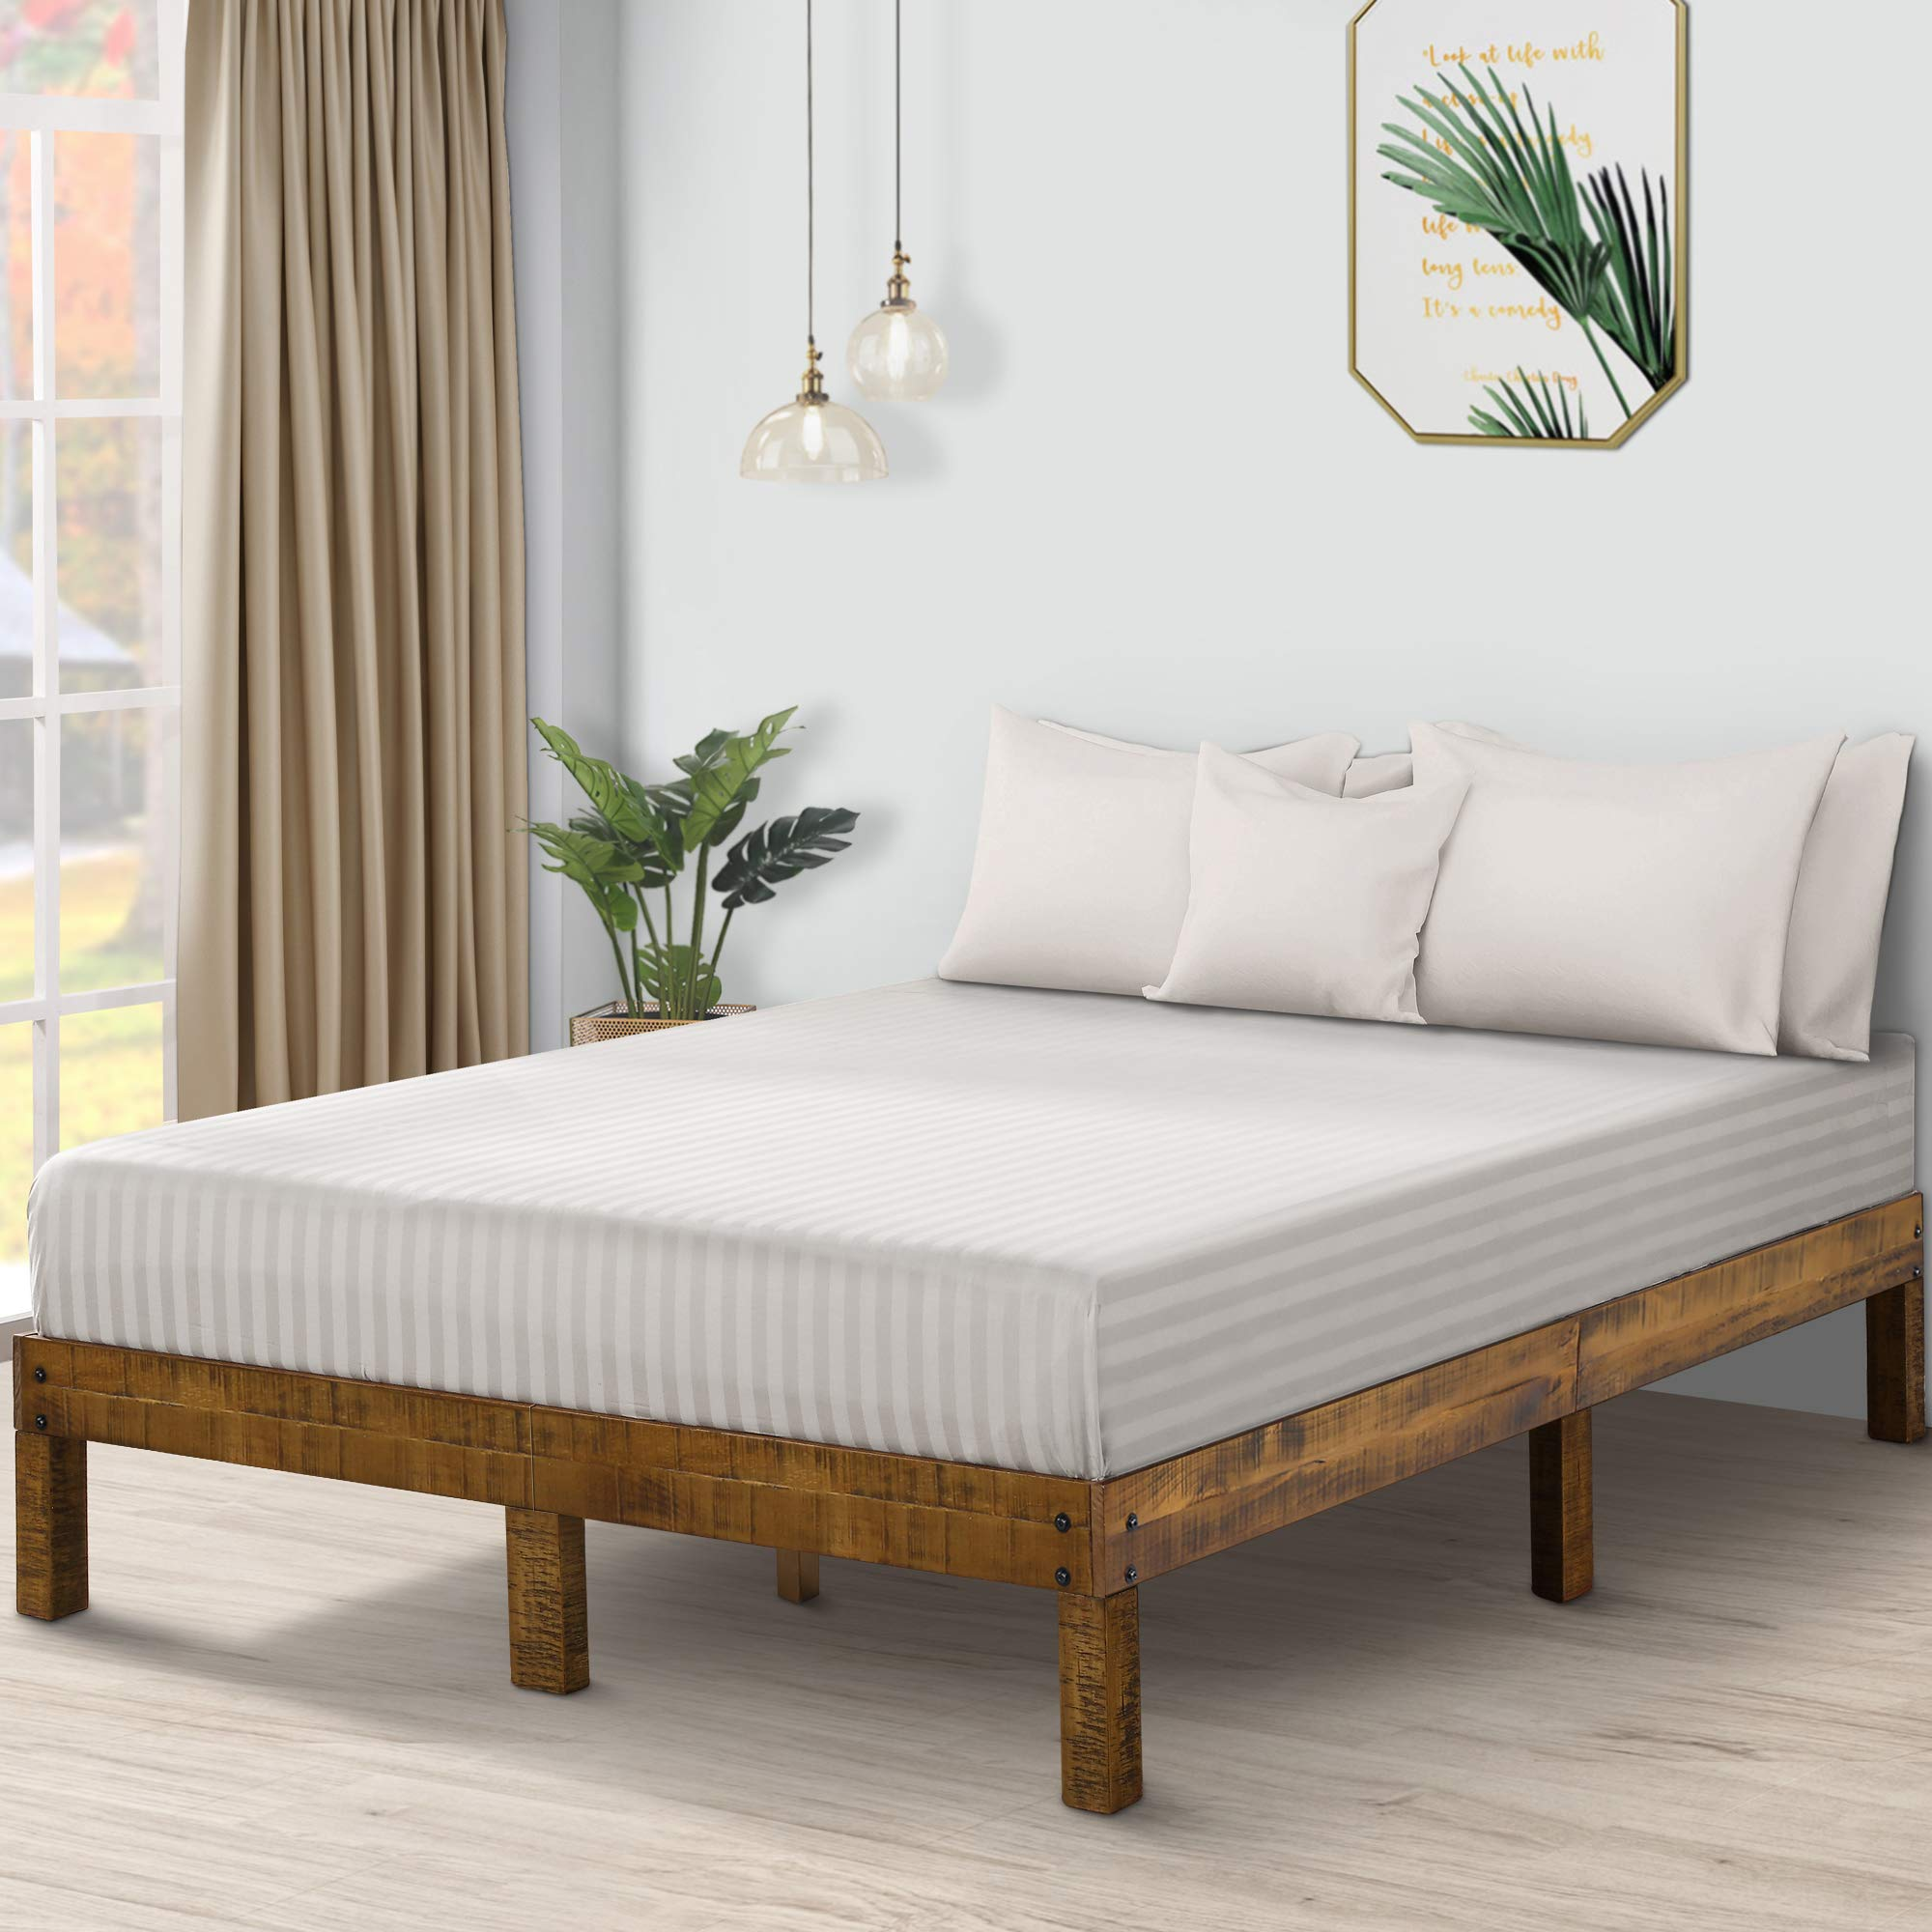 PrimaSleep PR14SF01F-1 14 Inch Solid Wood Platform Bed Frame/Anti-Slip Support/No Box Spring Needed/Easy to Set Up Up, Full, Natural